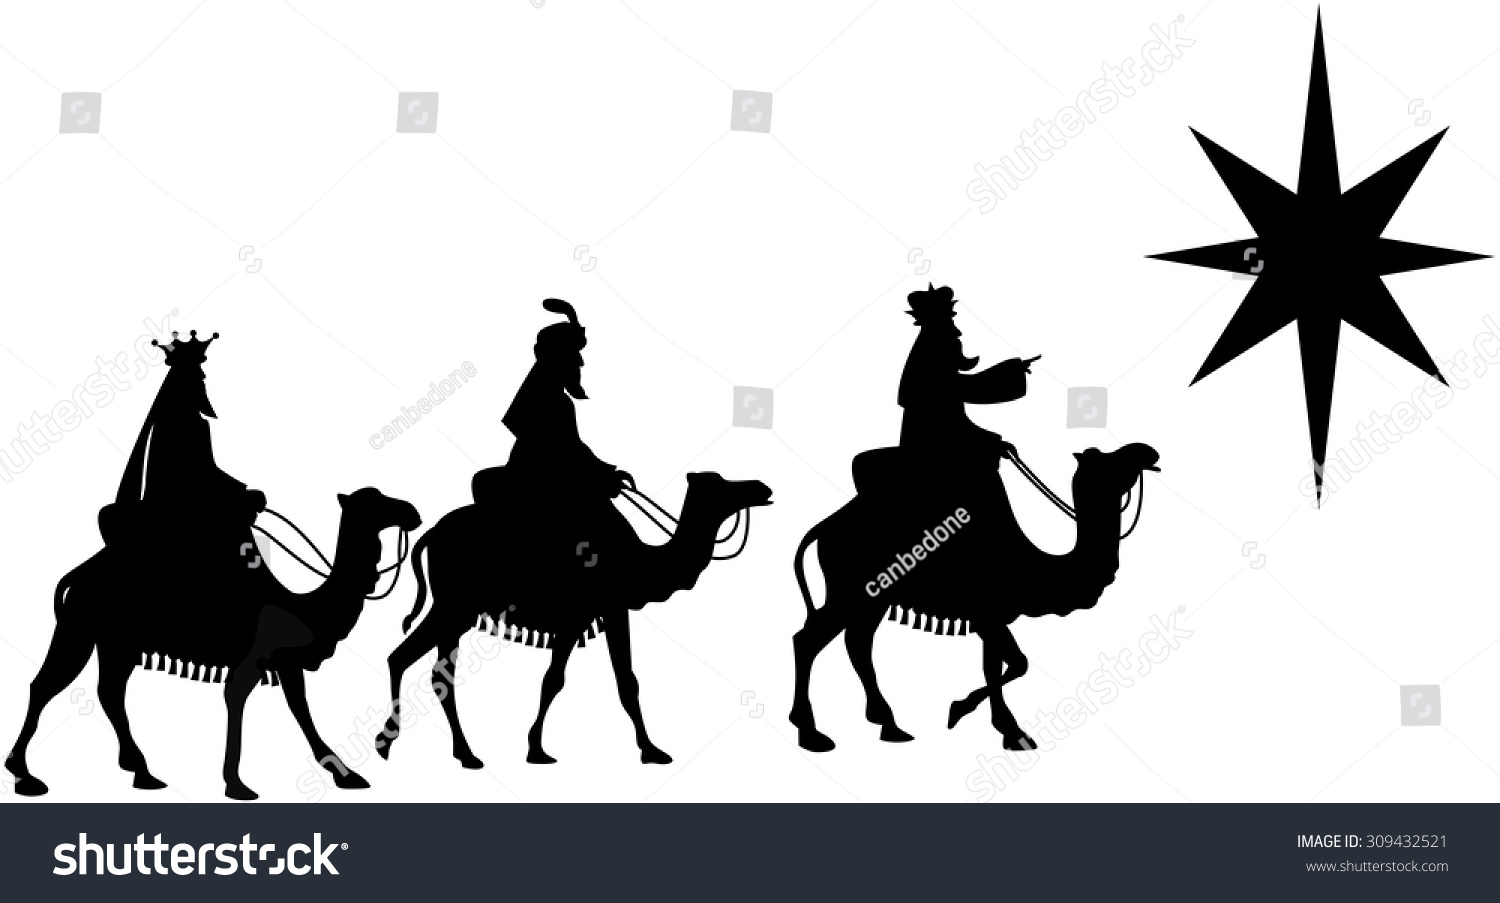 Silhouette of three Kings traveling on camel back from the East following the Star of Bethlehem isolated